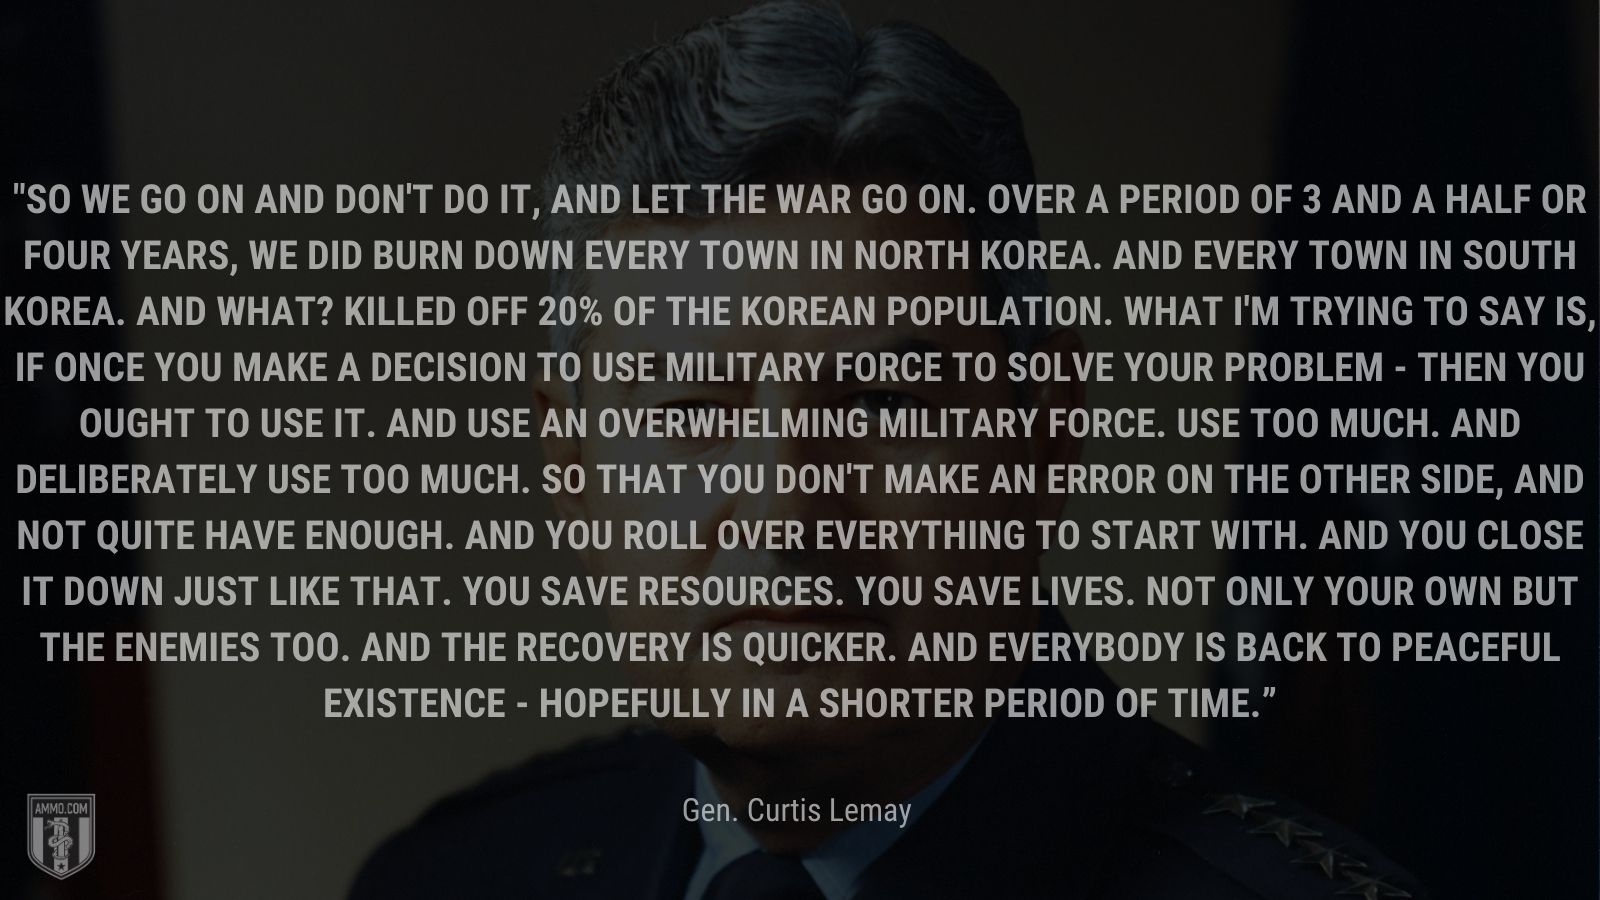 """""""So we go on and don't do it, and let the war go on. Over a period of 3 and a half or four years, we did burn down every town in North Korea. And every town in South Korea. And what? Killed off 20% of the Korean population. What I'm trying to say is, if once you make a decision to use military force to solve your problem - then you ought to use it. And use an overwhelming military force. Use too much. And deliberately use too much. So that you don't make an error on the other side, and not quite have enough. And you roll over everything to start with. And you close it down just like that. You save resources. You save lives. Not only your own but the enemies too. And the recovery is quicker. And everybody is back to peaceful existence - hopefully in a shorter period of time."""" - Gen. Curtis Lemay"""